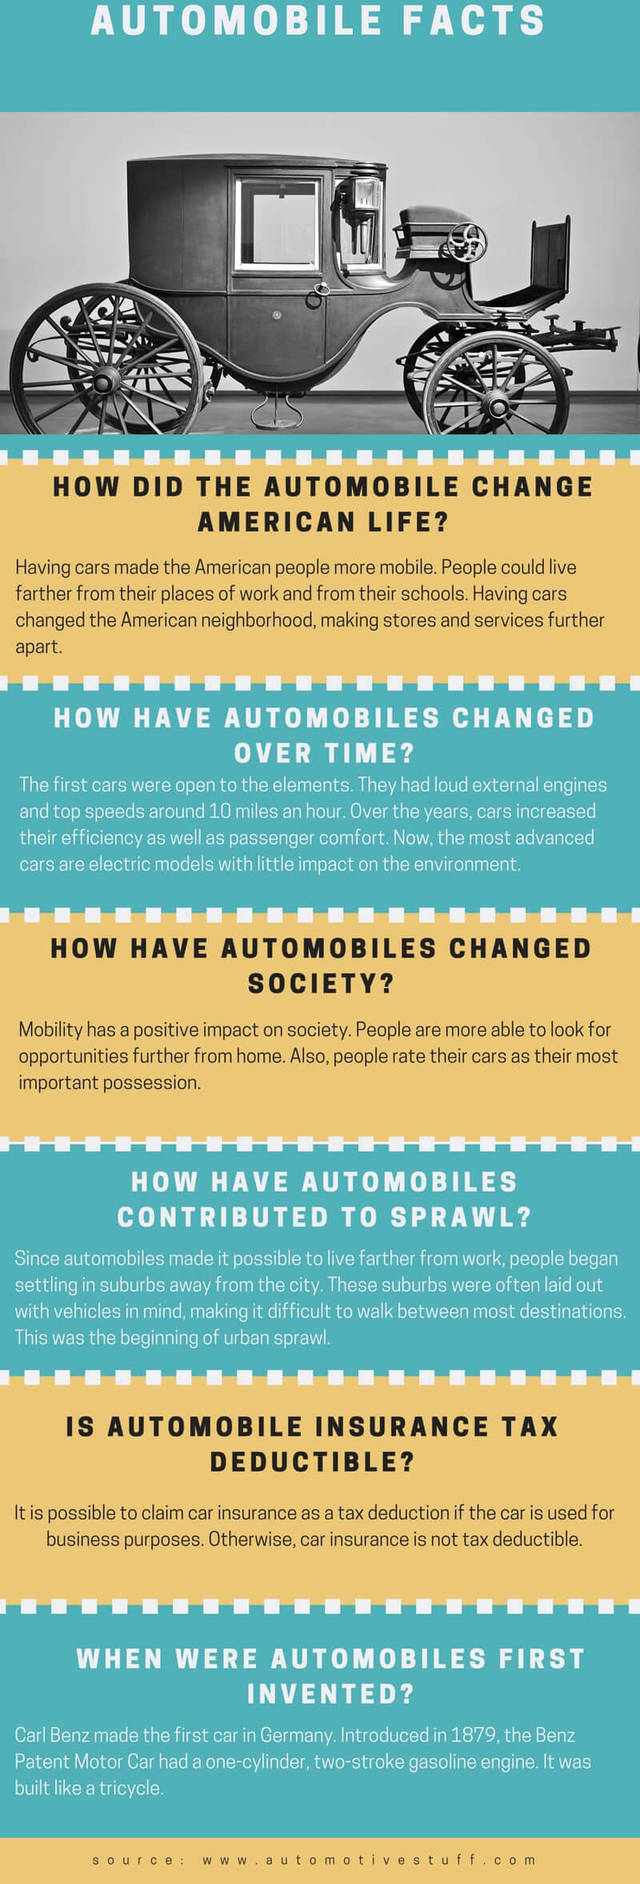 Automotive facts infographic